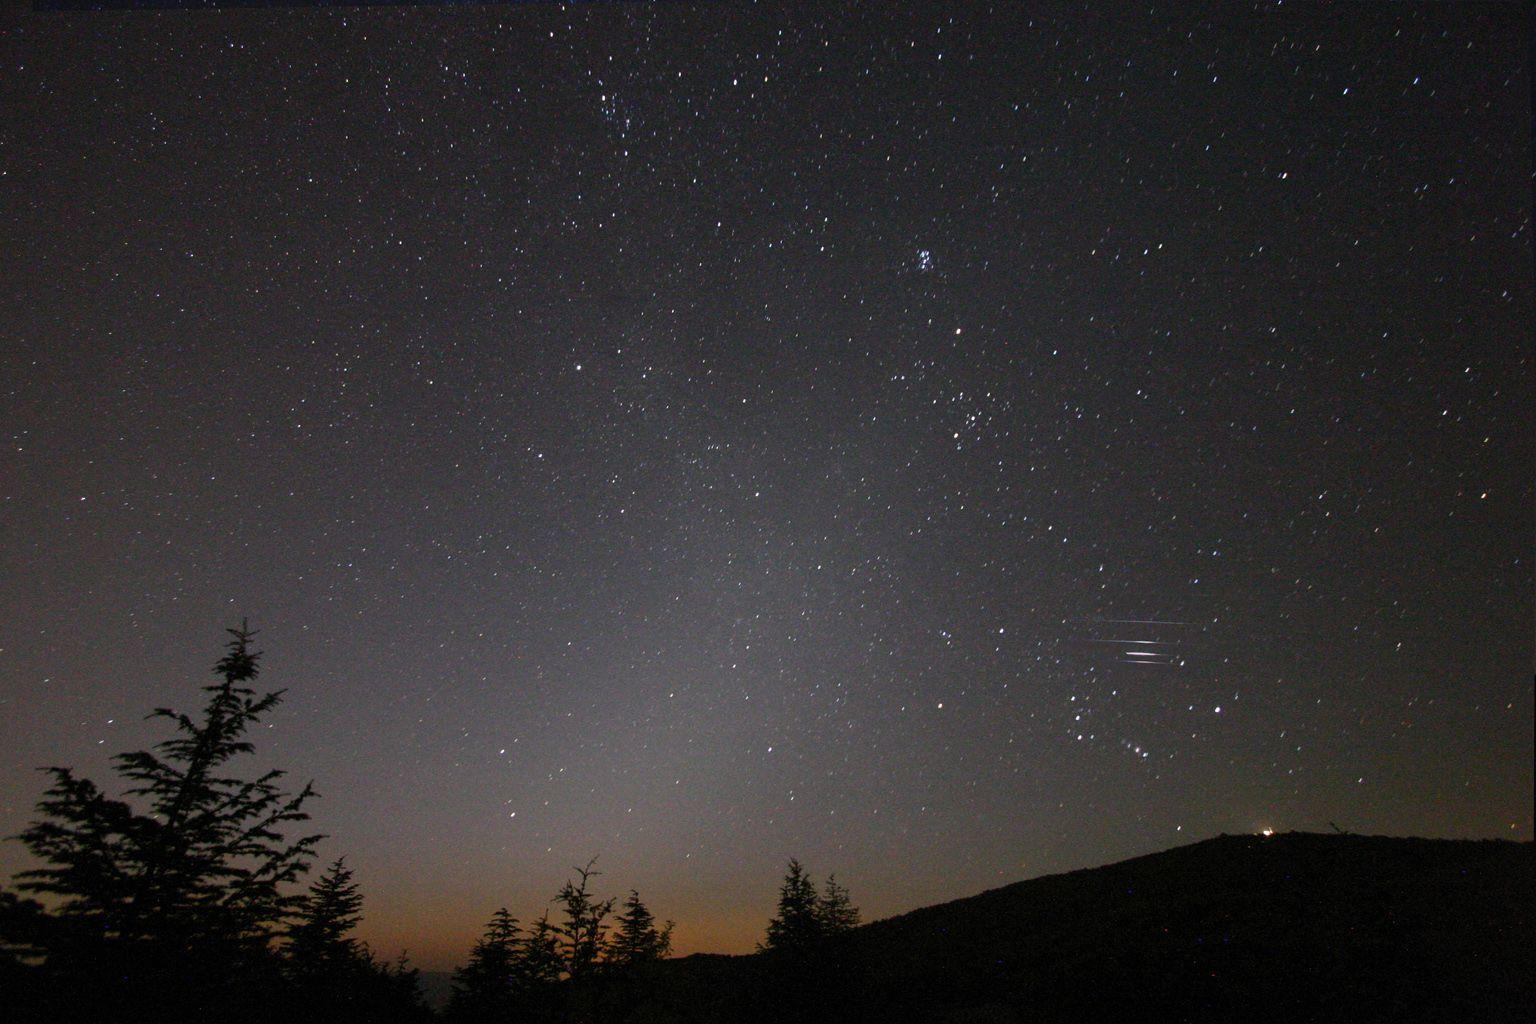 Spaceweather.com: 2007 Perseid Meteor Shower photo gallery